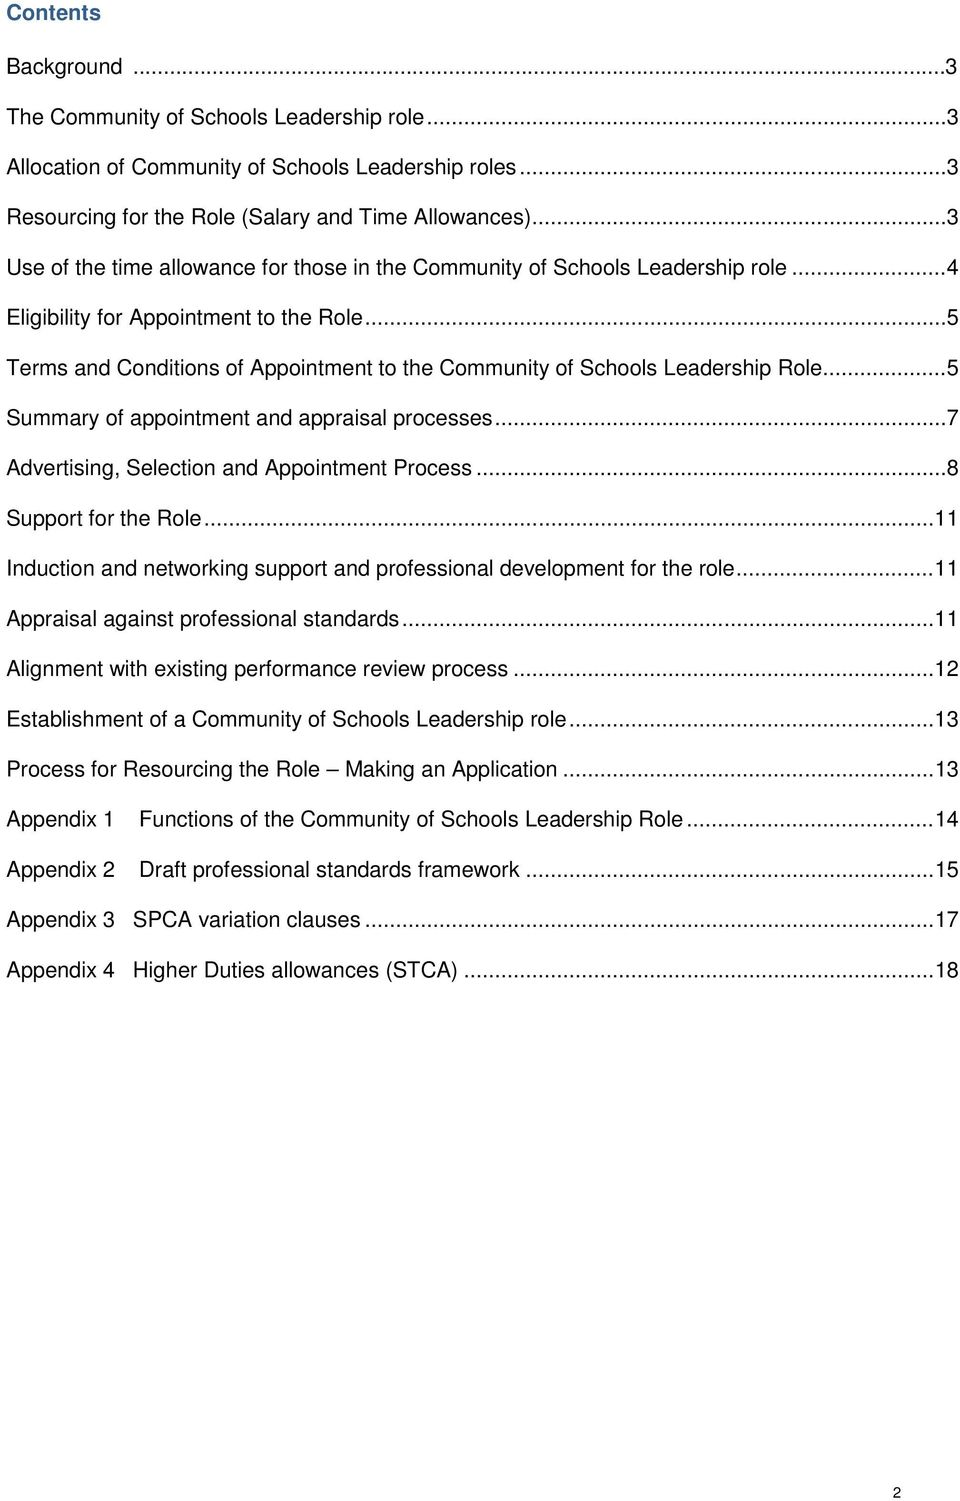 Guidelines for the appointment to the Community of Schools